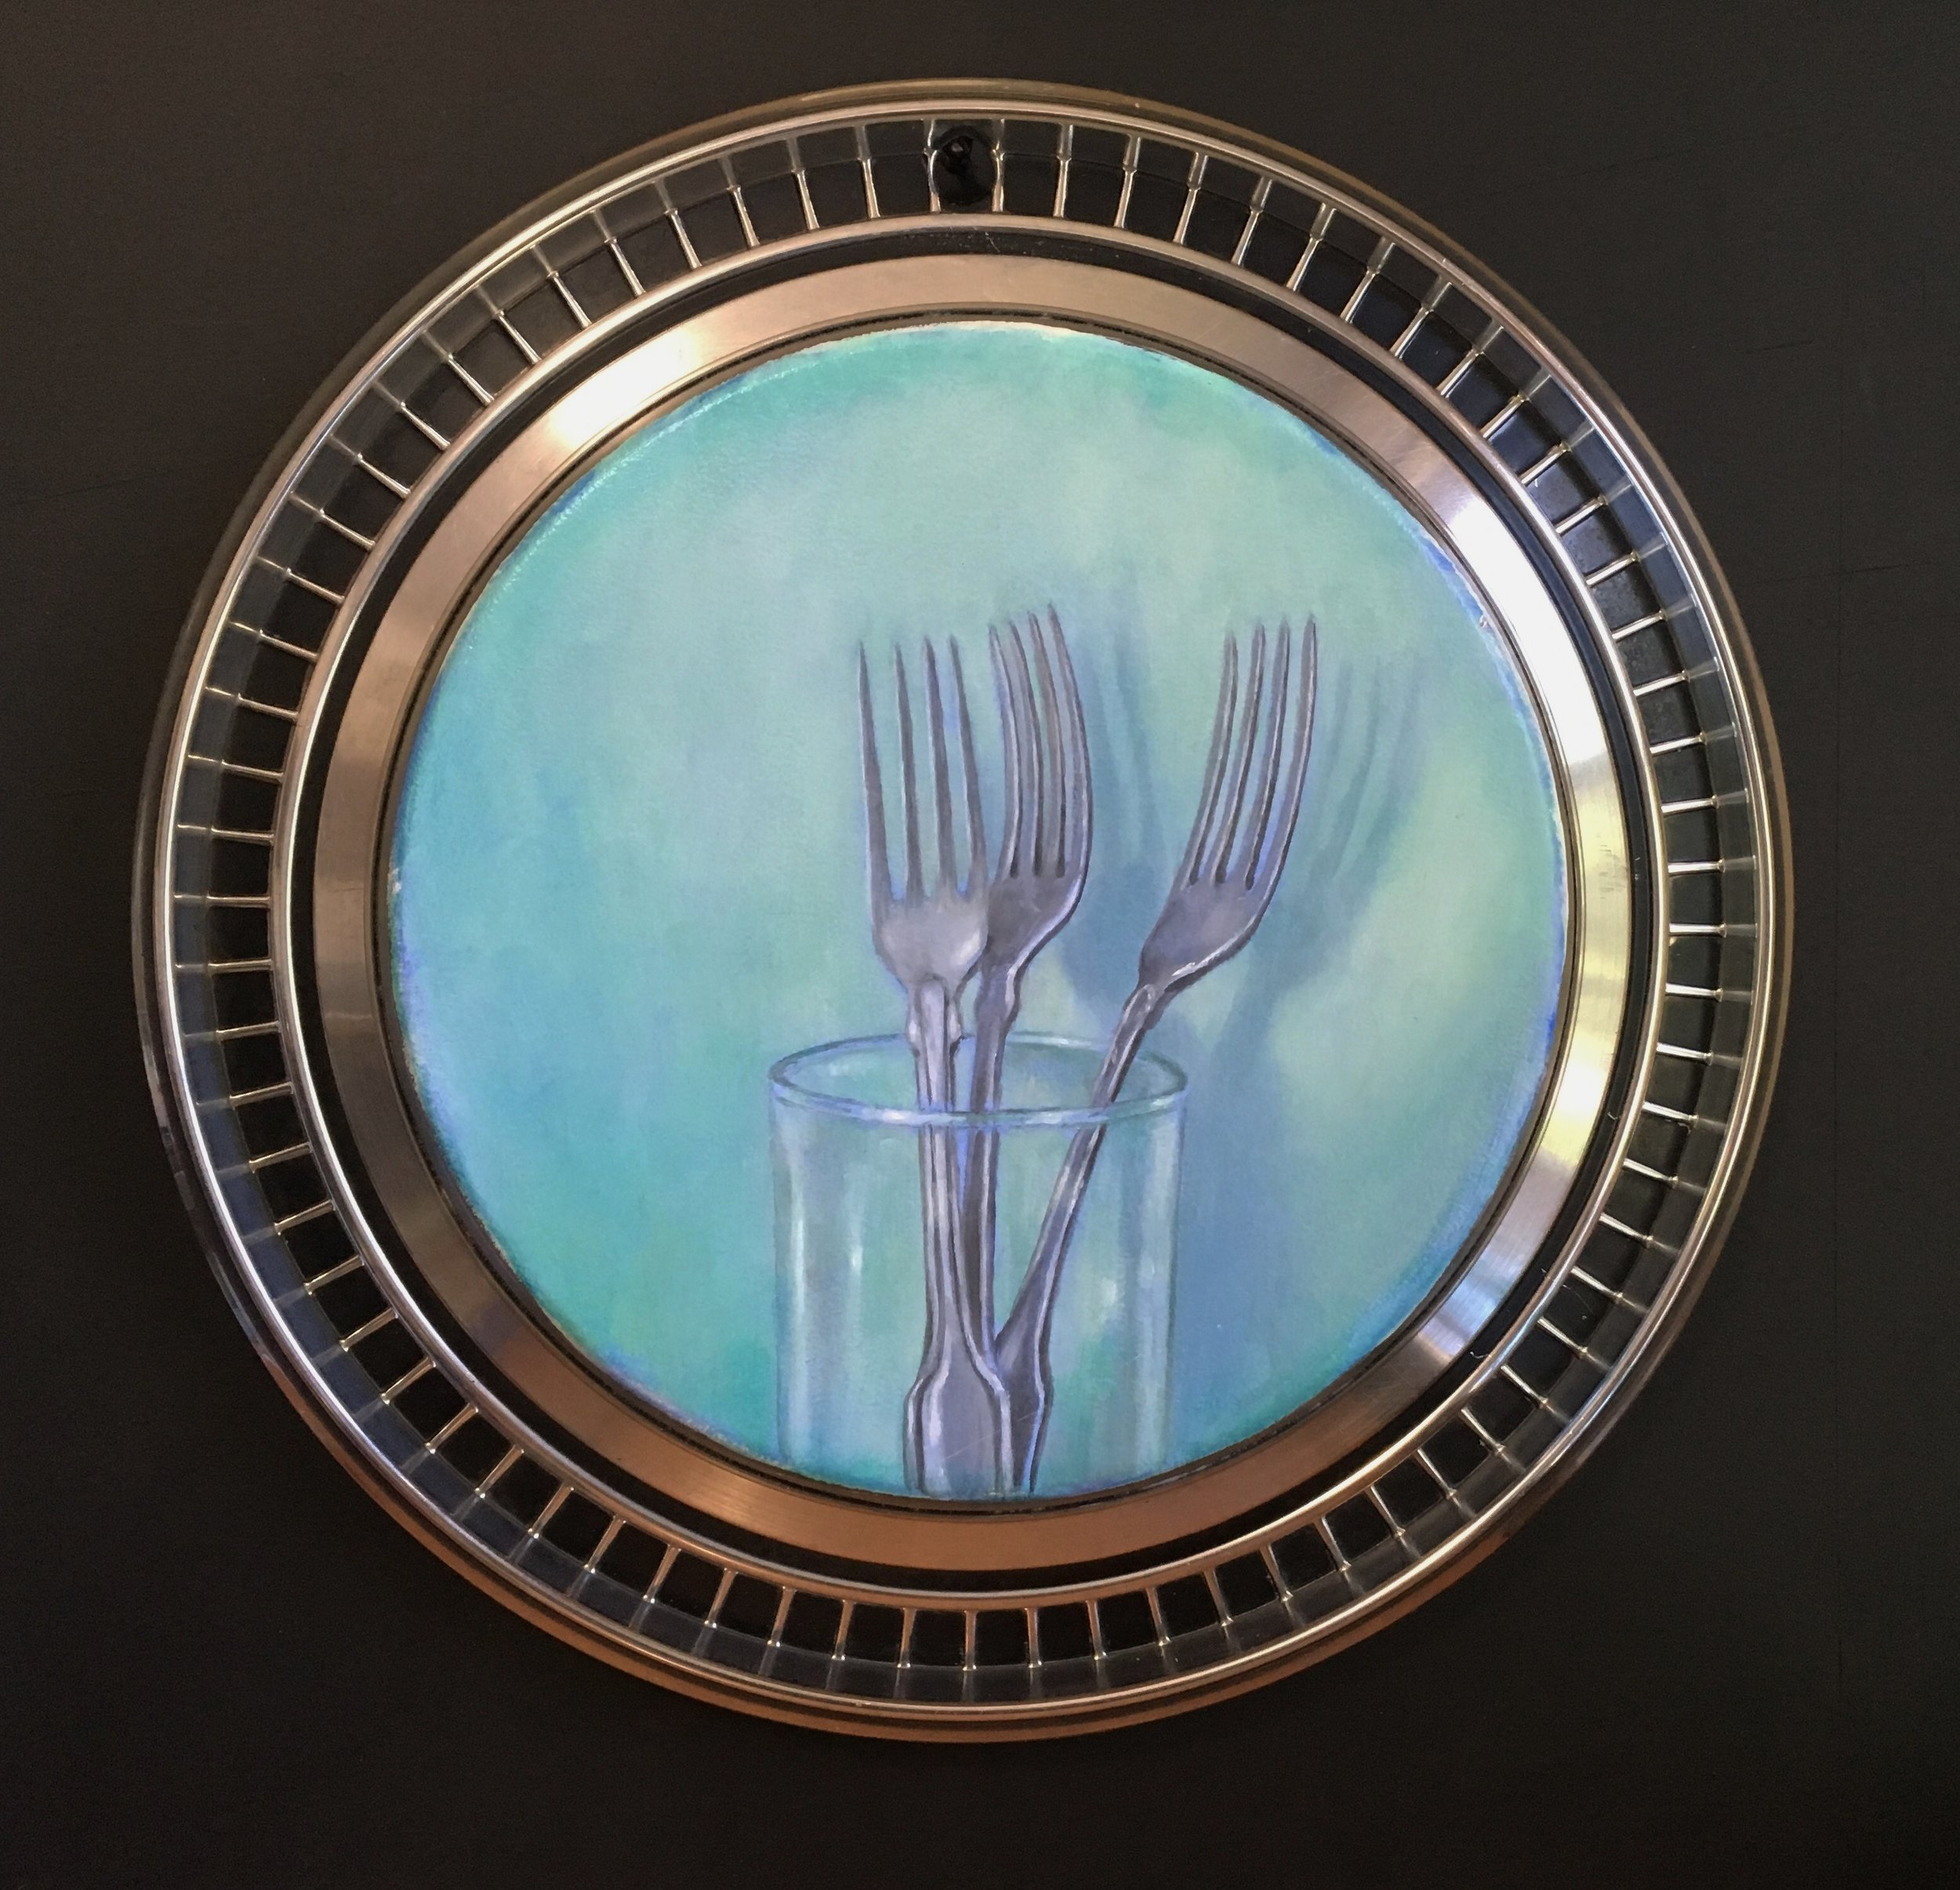 Forks and Glass